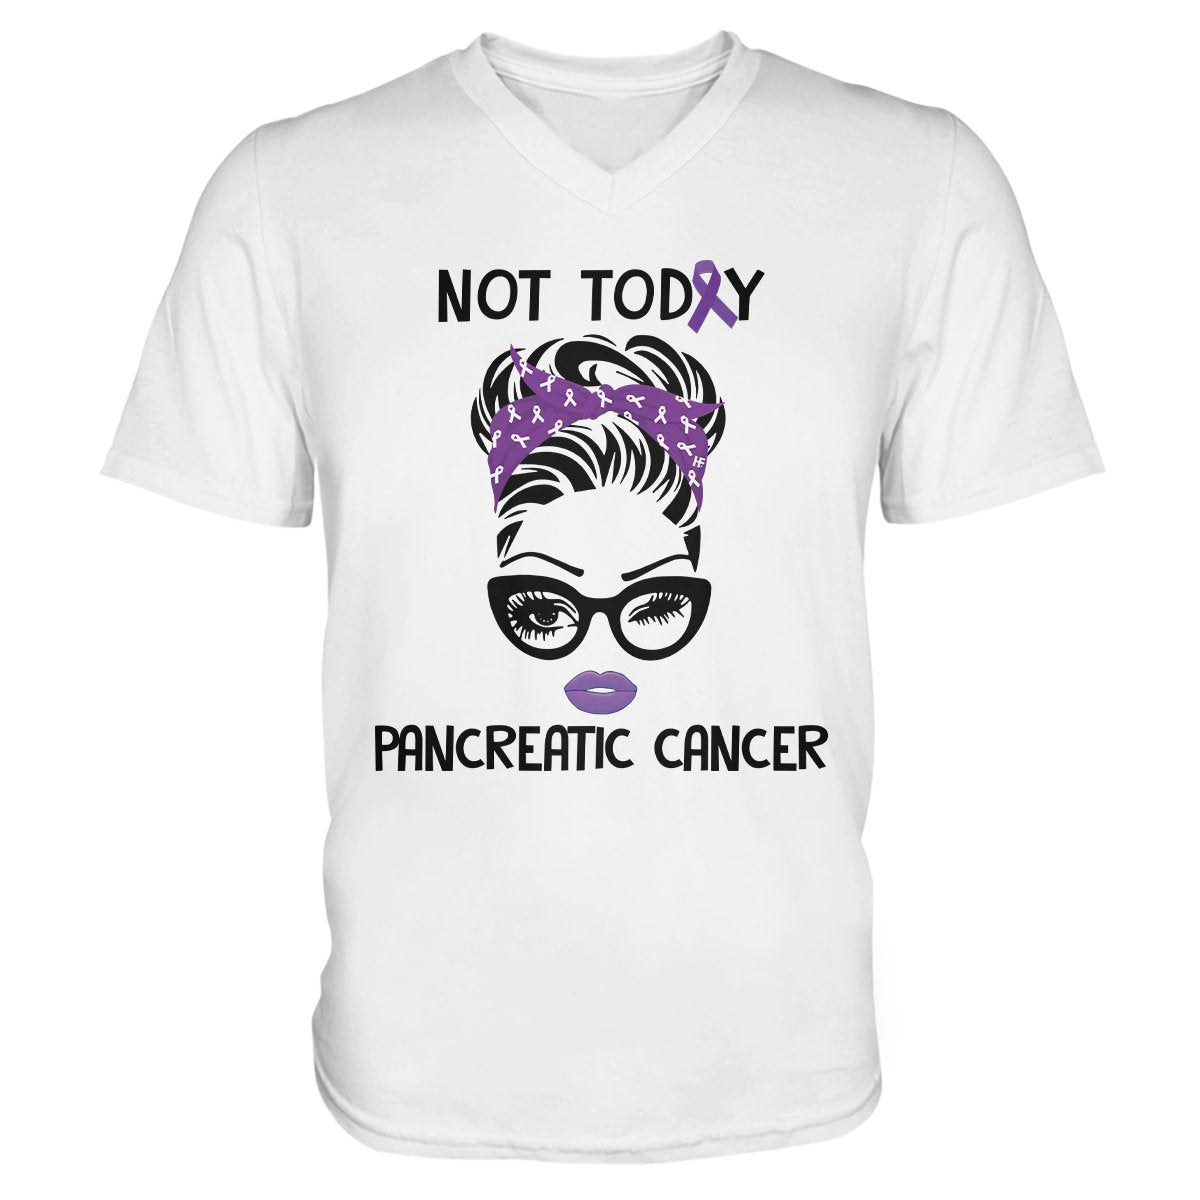 Not Today Pancreatic Cancer Awareness EZ24 2912 Men V-neck T-shirt